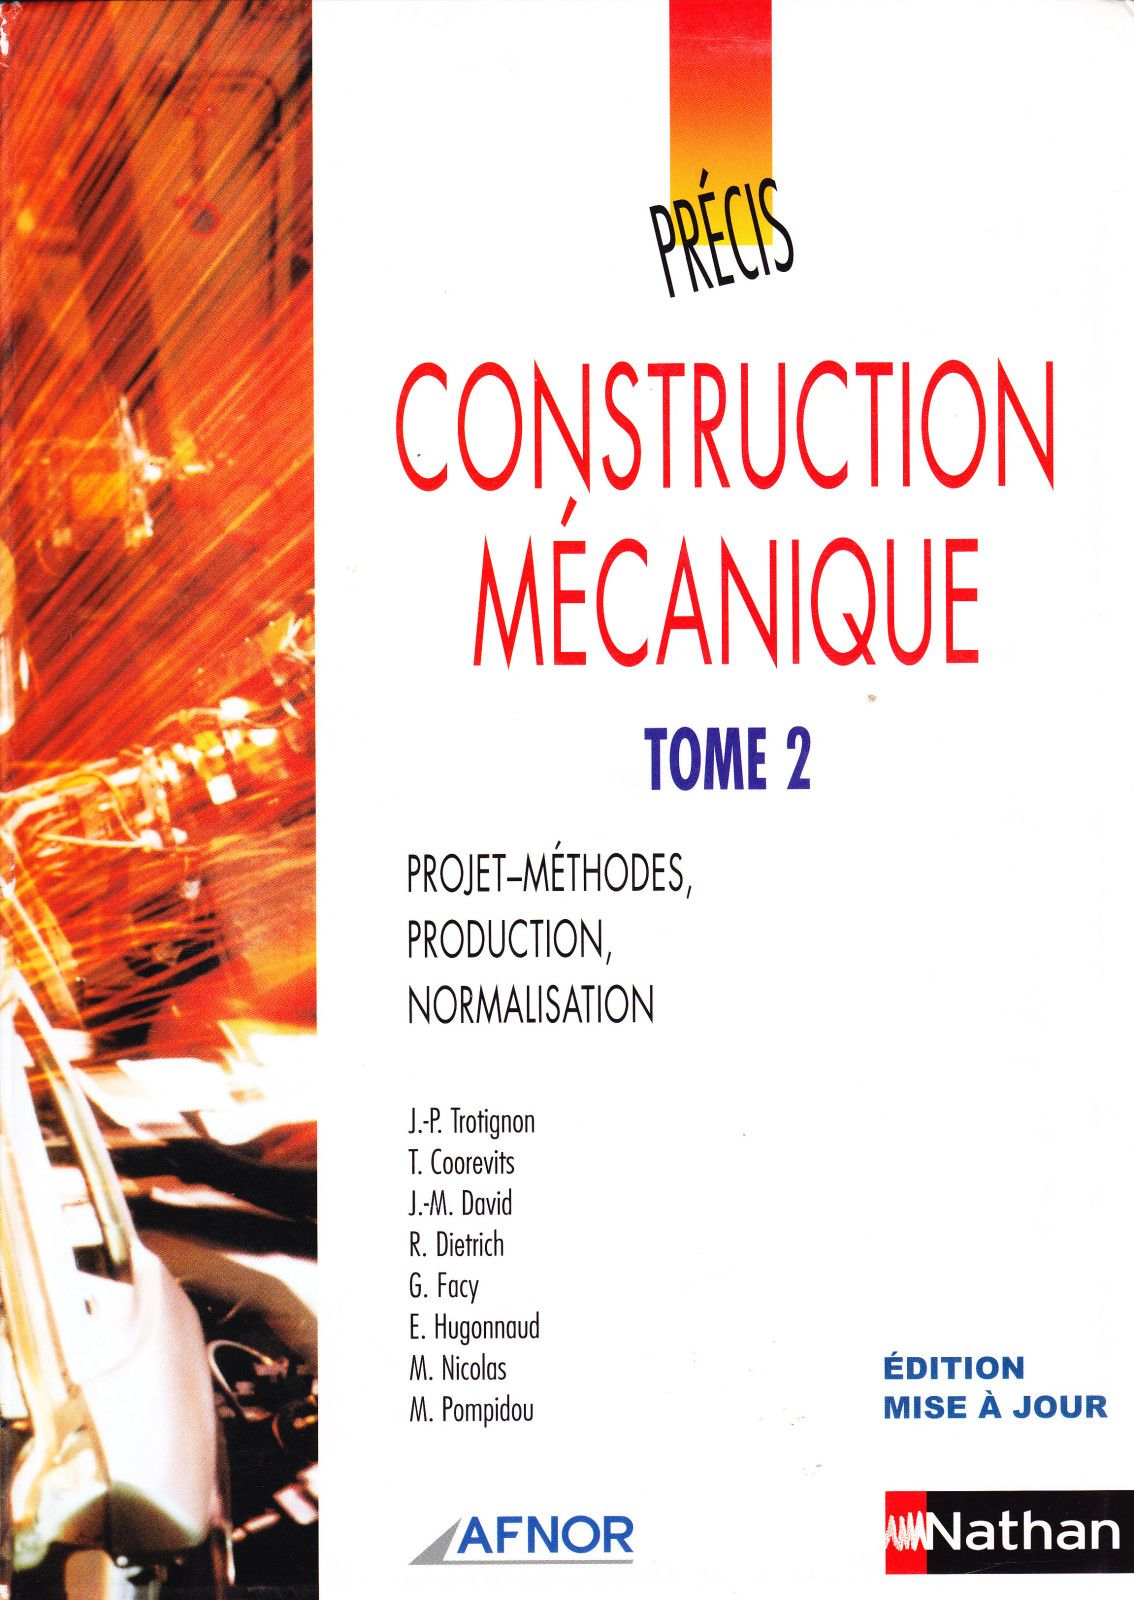 Album Precis De Construction Mecanique Le Blog De Ressources Cpi Blog Over Blog Com Genie Mecanique Mecanique Maintenance Industrielle